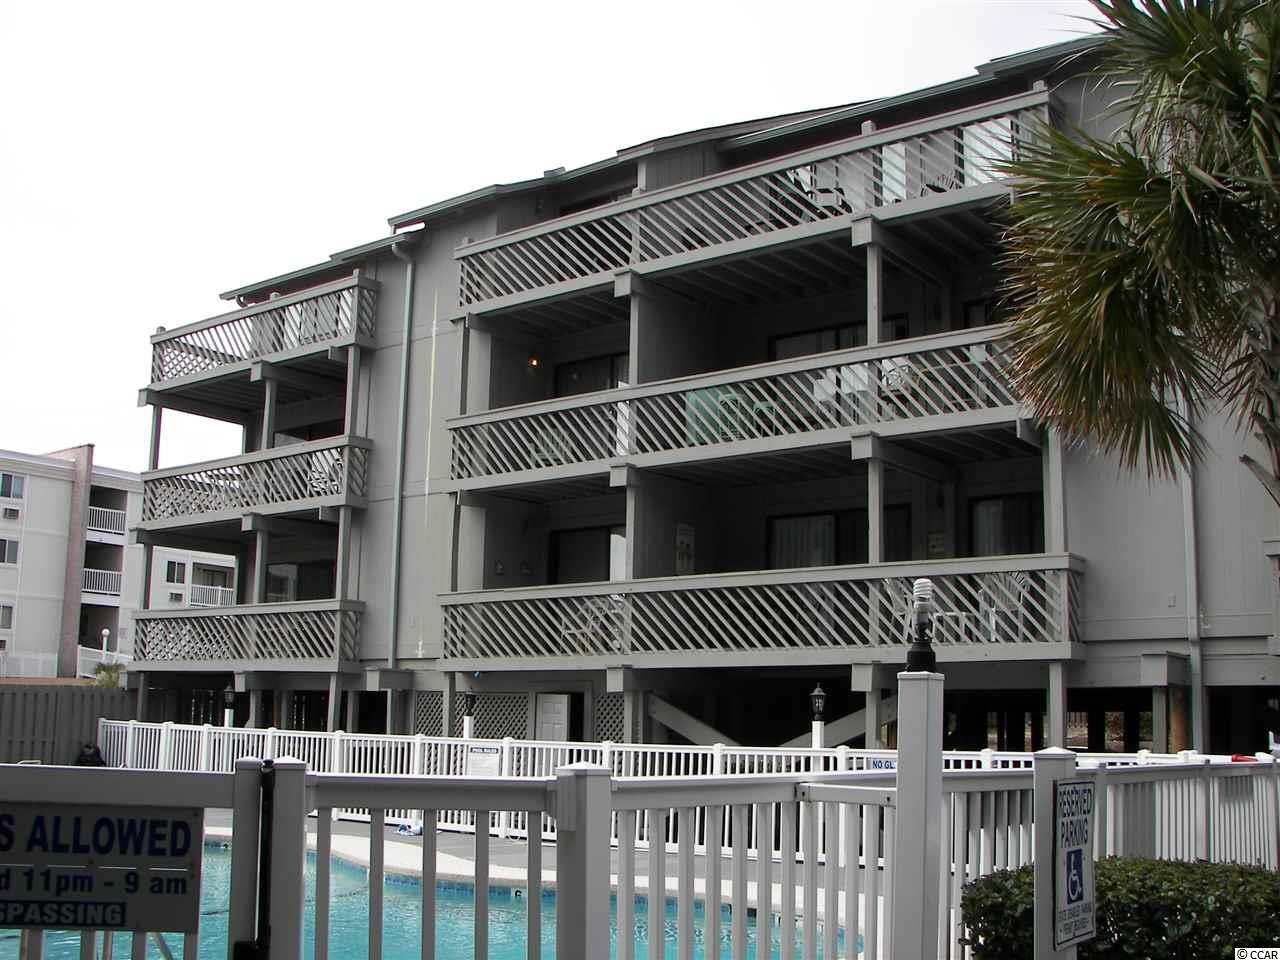 Shipwatch Pointe I H-235 is a 1 bedroom and 1 bath condominium that is being sold furnished. The hot water heater and the HVAC system were replaced in 2017. In addition, new flooring was installed throughout, with the kitchen and the baths featuring Terrgo Tile. The refrigerator and the dishwasher were replaced in 2016. In 2013 all new sheetrock was installed throughout the unit with the ceiling being coated with a smooth finish. All walls were also painted. This villa is located directly across the street from the ocean, which is exactly what most vacationers and owners want, very quick access to the beach. H-235 is a very spacious 600 heated square feet with a balcony that overlooks one of the communities several pools. The balcony enjoys plenty of room for a table and chairs to accommodate everyone that may be staying in this home. There are outdoor pools and whirlpools right on site for the enjoyment of those that do not wish to go down to the ocean. Shipwatch Pointe I is located in the very popular resort destination known as Shore Drive, in the Arcadian section of Myrtle Beach. You can keep your car parked and enjoy grilling, fishing, bicycling, shopping at the Straw Market, dancing the shag at Ocean Annie's, or enjoying one of the best hamburgers on the beach at River City Cafe. For those interested in serious shopping, it is a very short drive to Tanger Outlets, the Myrtle Beach Mall, Barefoot Landing, Broadway at the Beach, the Coastal Grand Mall and The Market Common. Also nearby is wonderful family entertainment like the Carolina Opry, challenging golf, and every kind of restaurant you could desire. Call the listing agent and make your appointment to see this beautiful second home. All measurements are approximate and not guaranteed. Verification is the responsibility of the buyer.